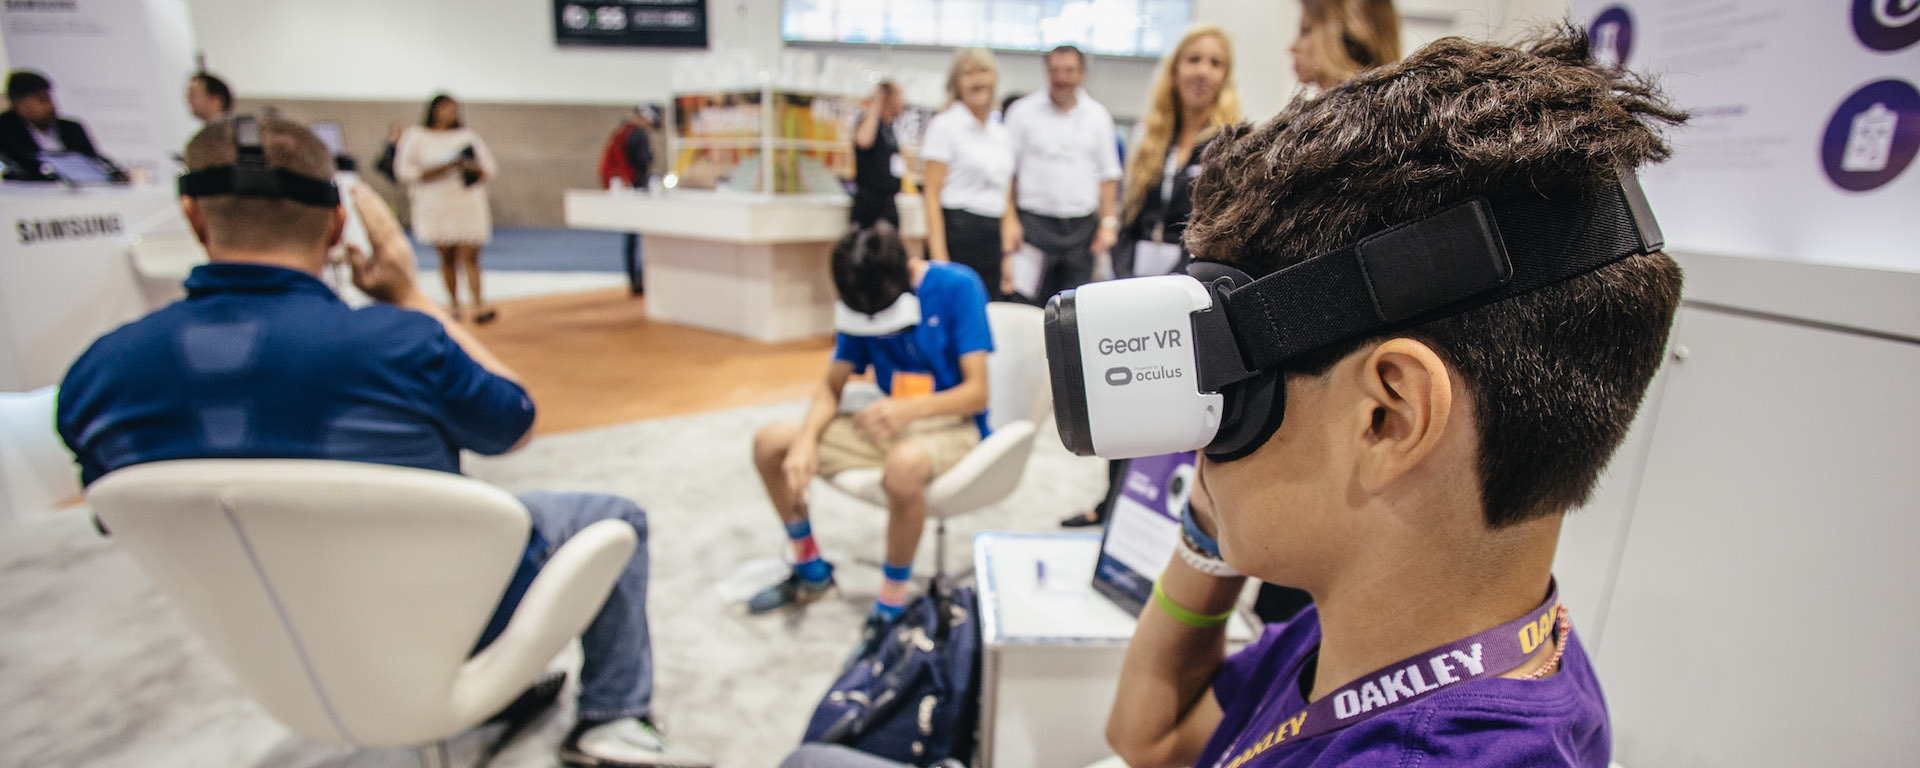 Virtual reality and its educational possibilities